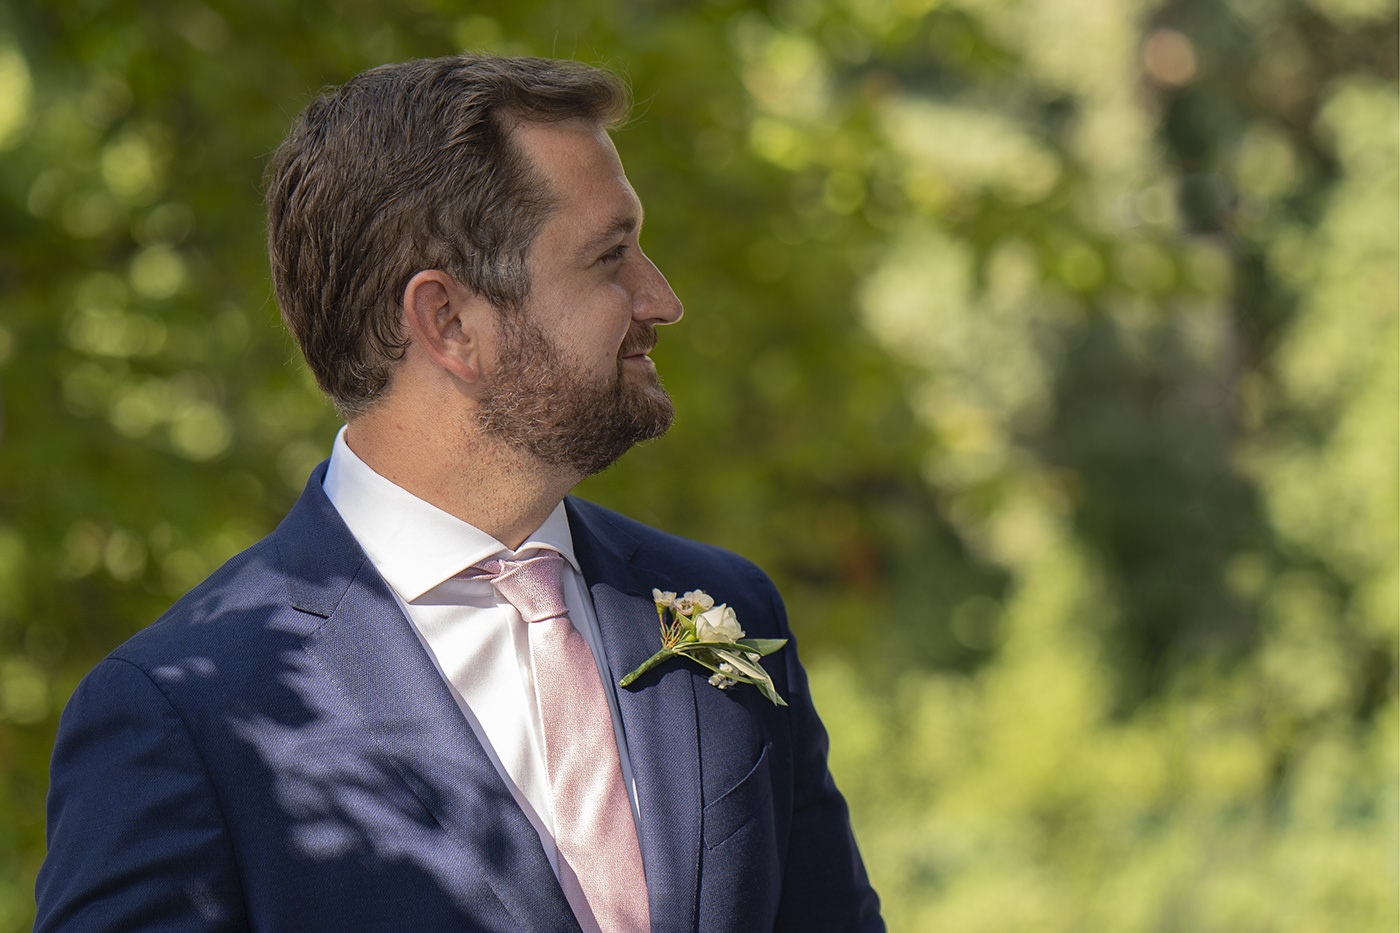 Duccio Argentini: Tuscan Wedding Photo Shoots At Palagio Castle. The groom look at the bride